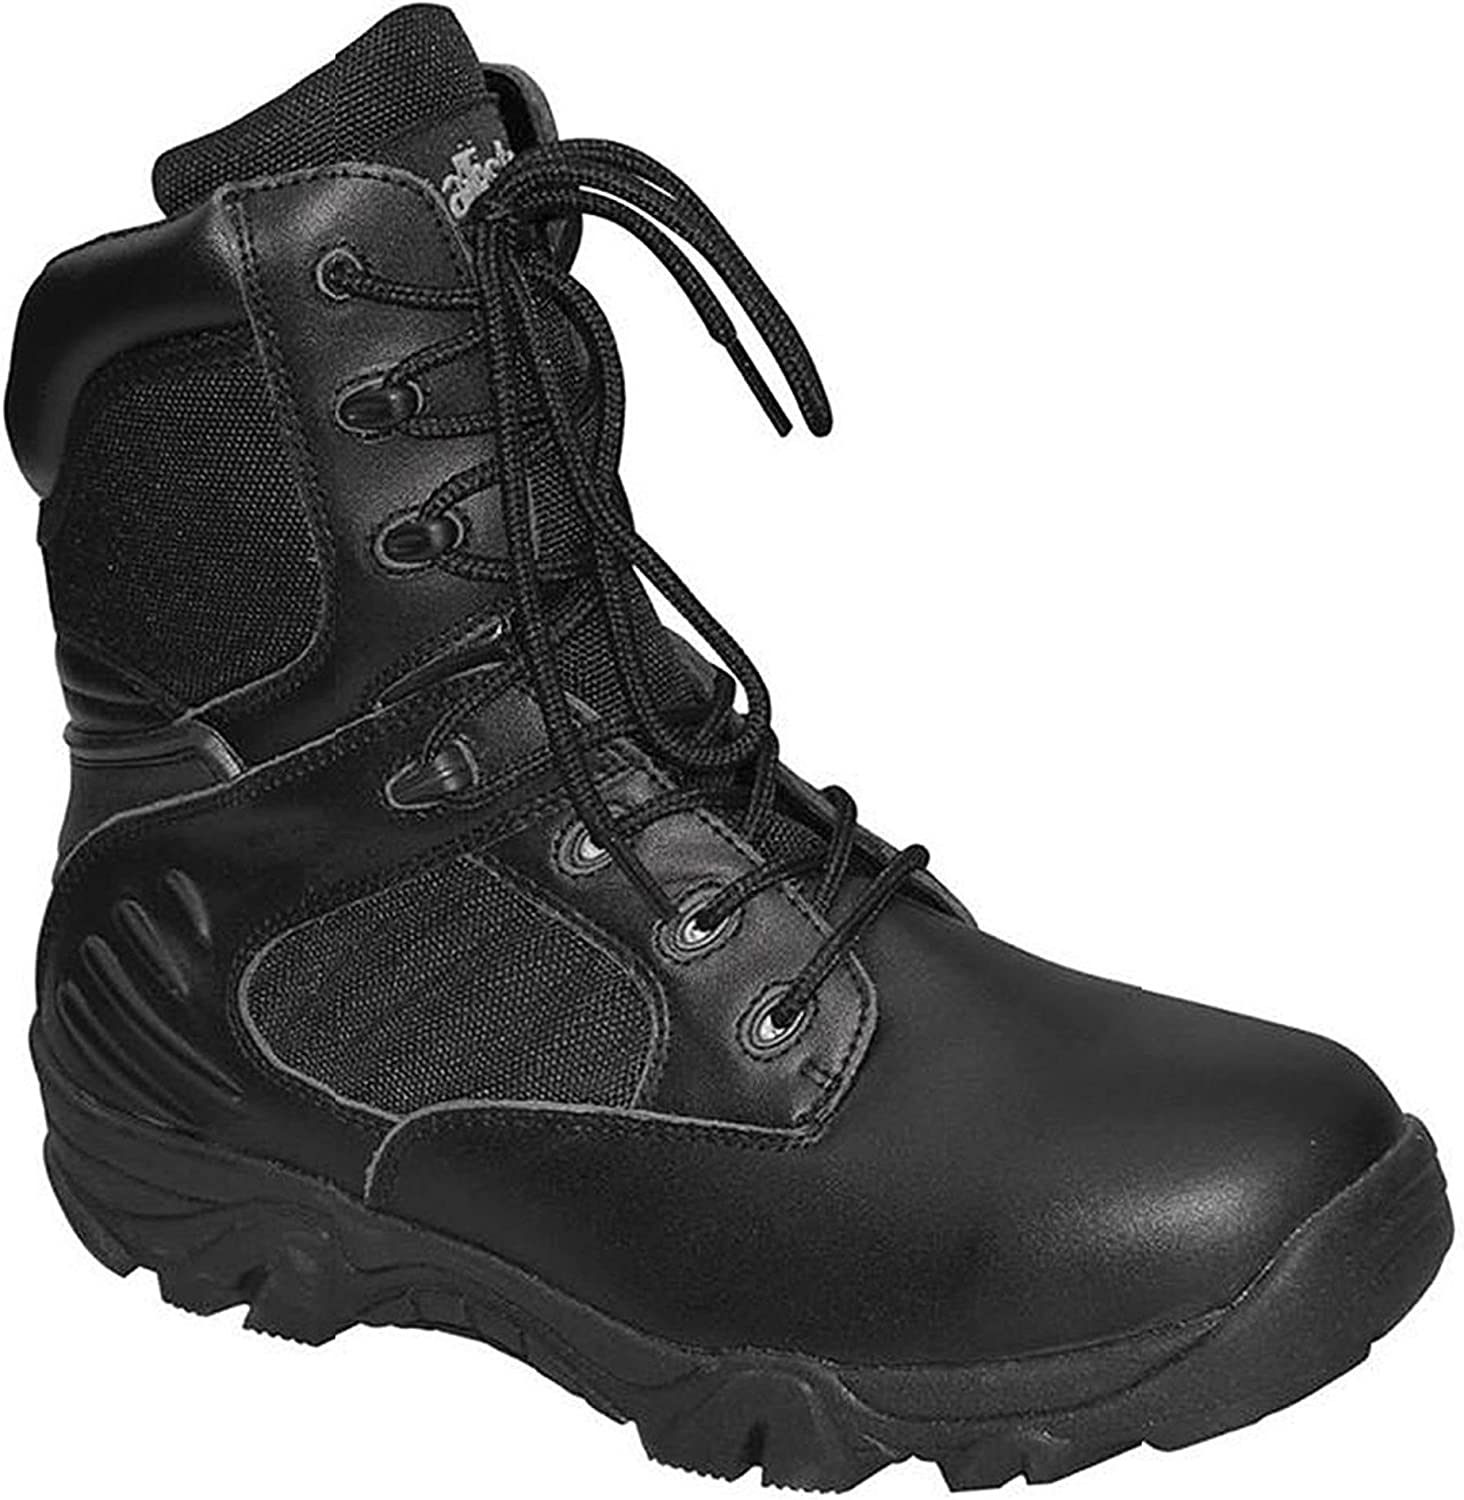 MFH BW Mountain Boots Breathtex Black Leather